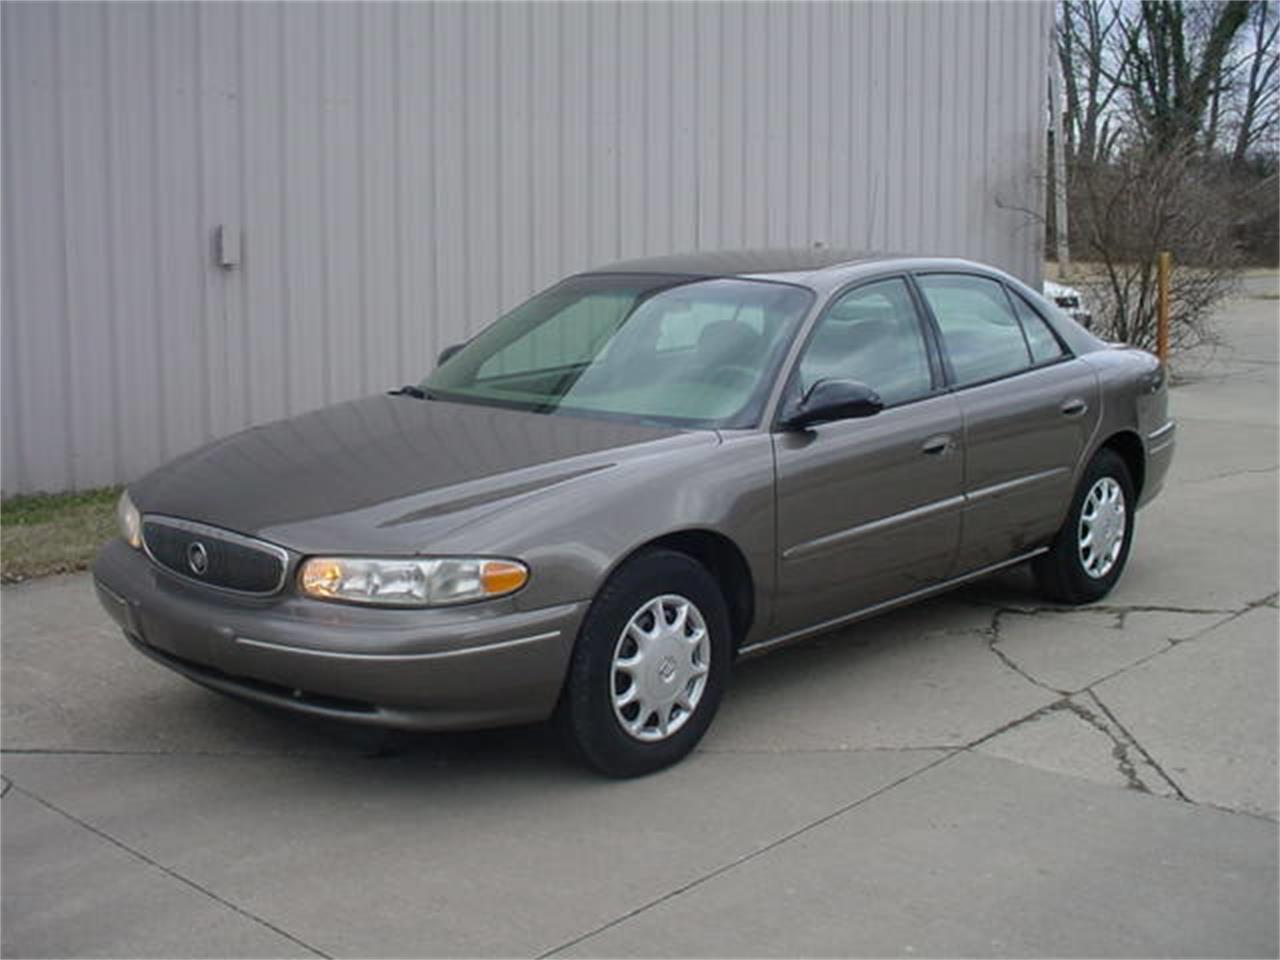 2003 buick century for sale | classiccars | cc-1031127